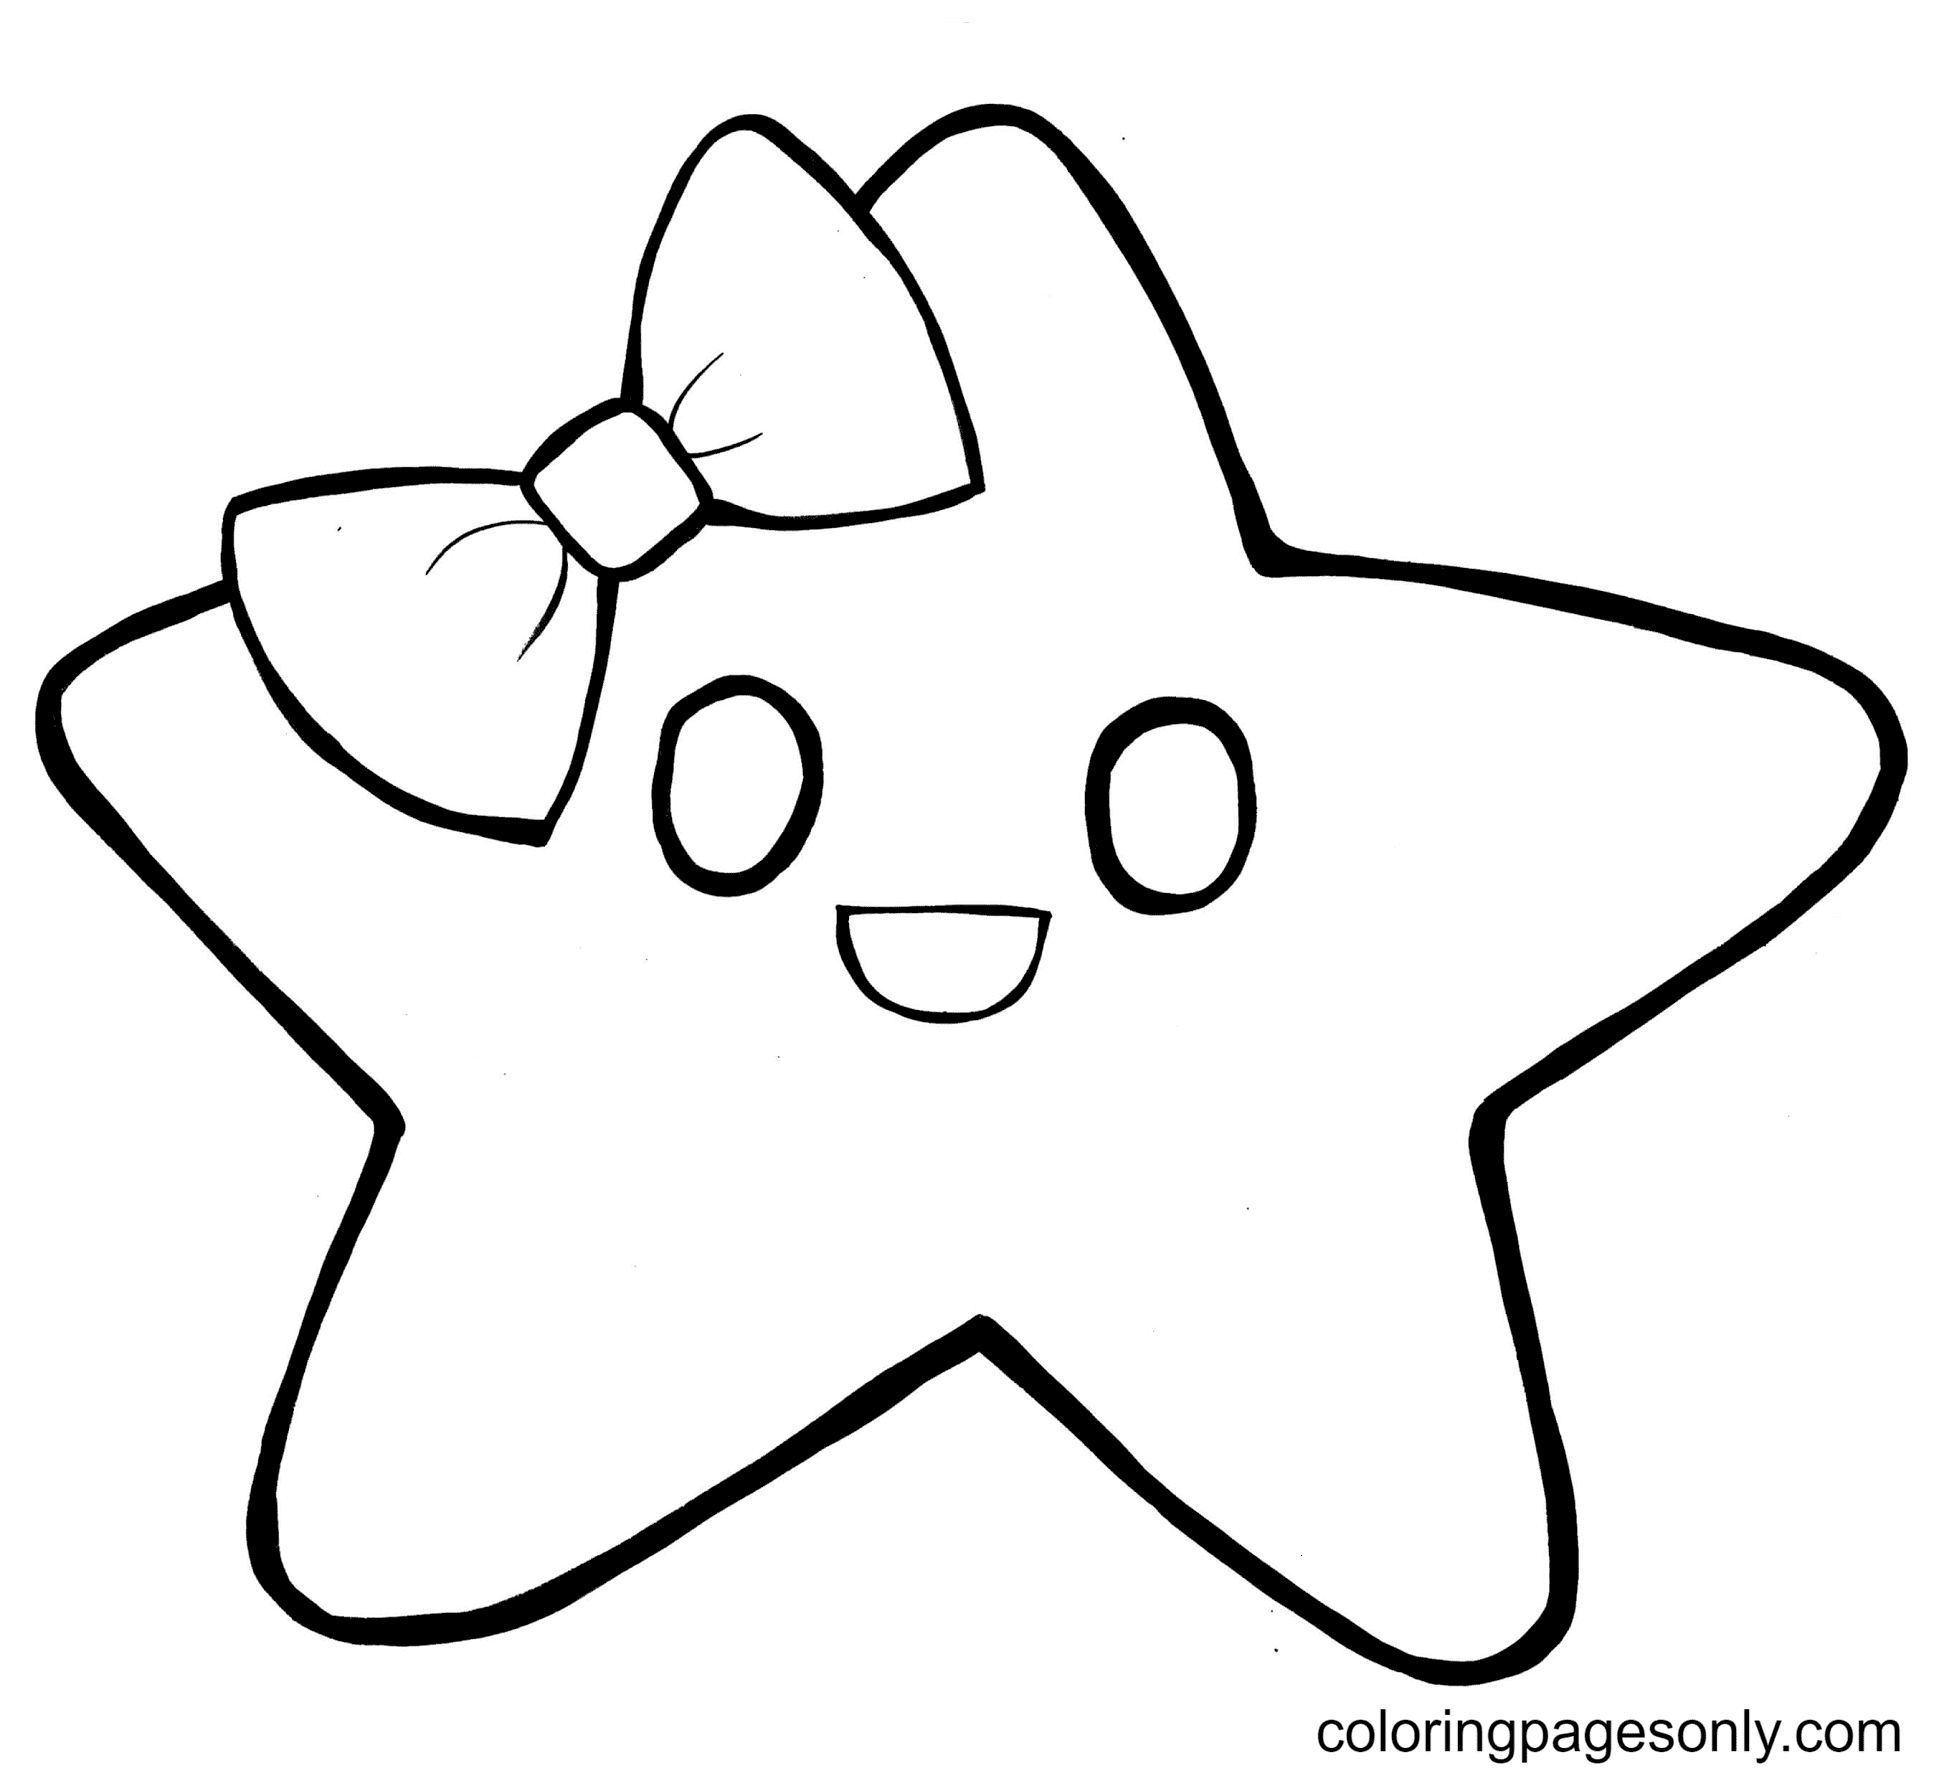 Gentle Star Coloring Page